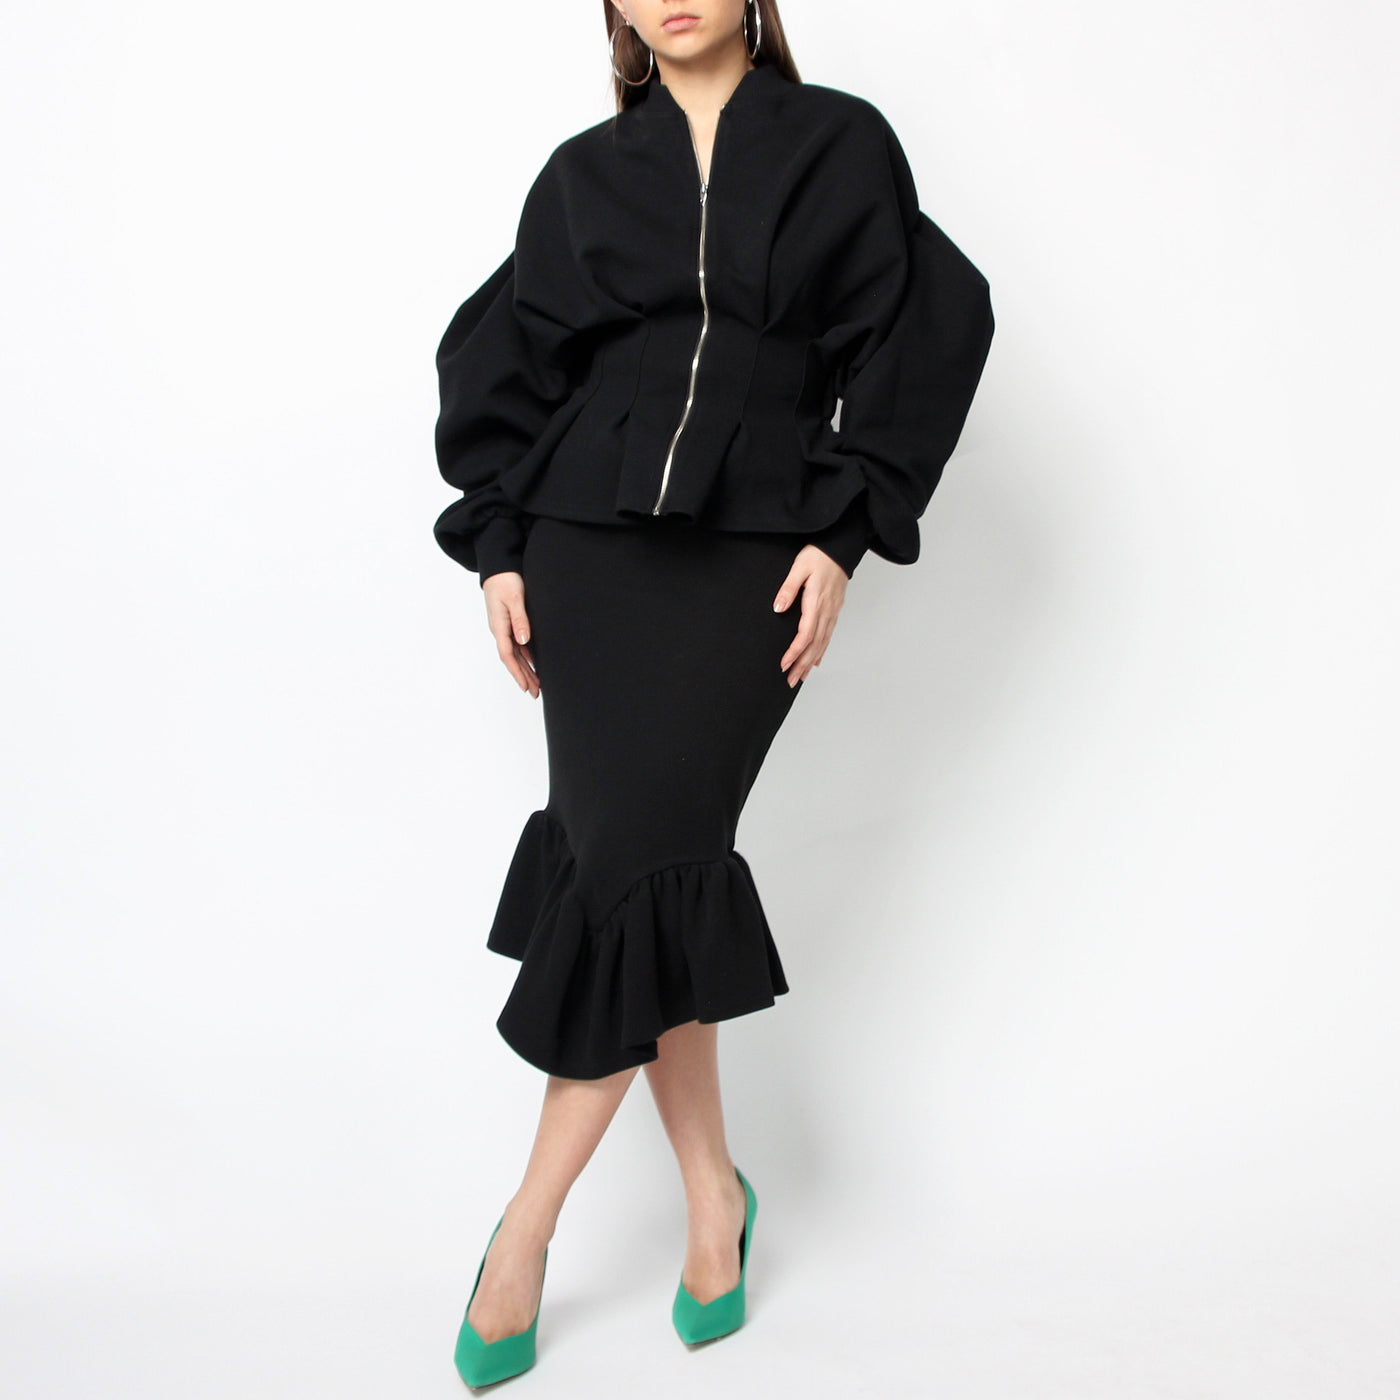 Black Volume Sleeve Jacket - Marble Hive